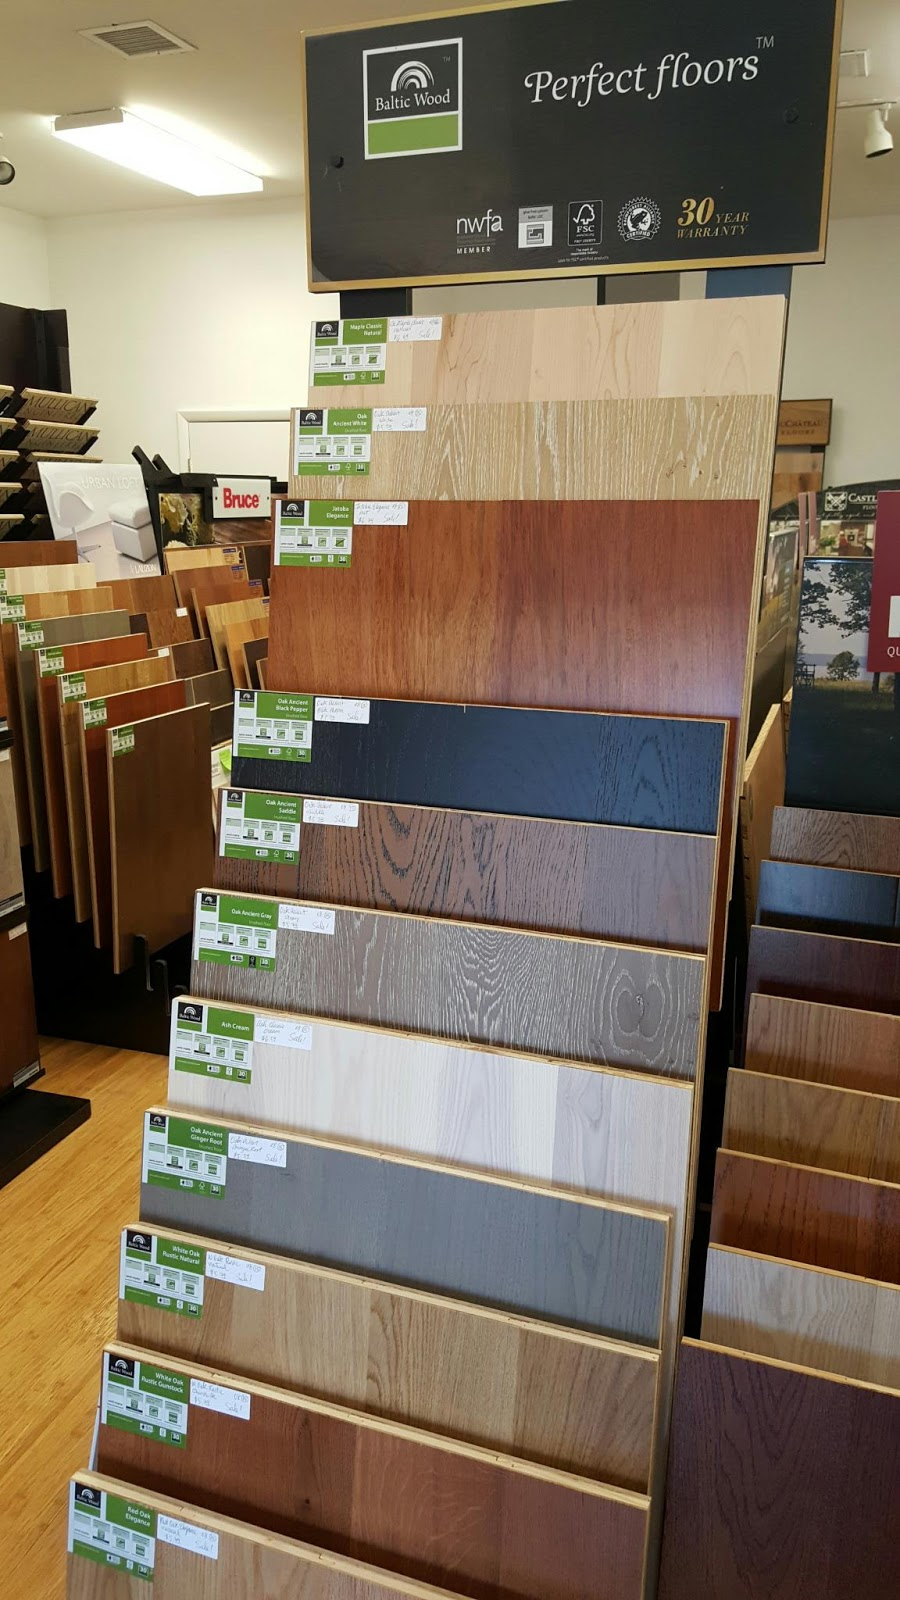 Baltic Wood 5 Plank Natural Regency Collection Nj New Jersey